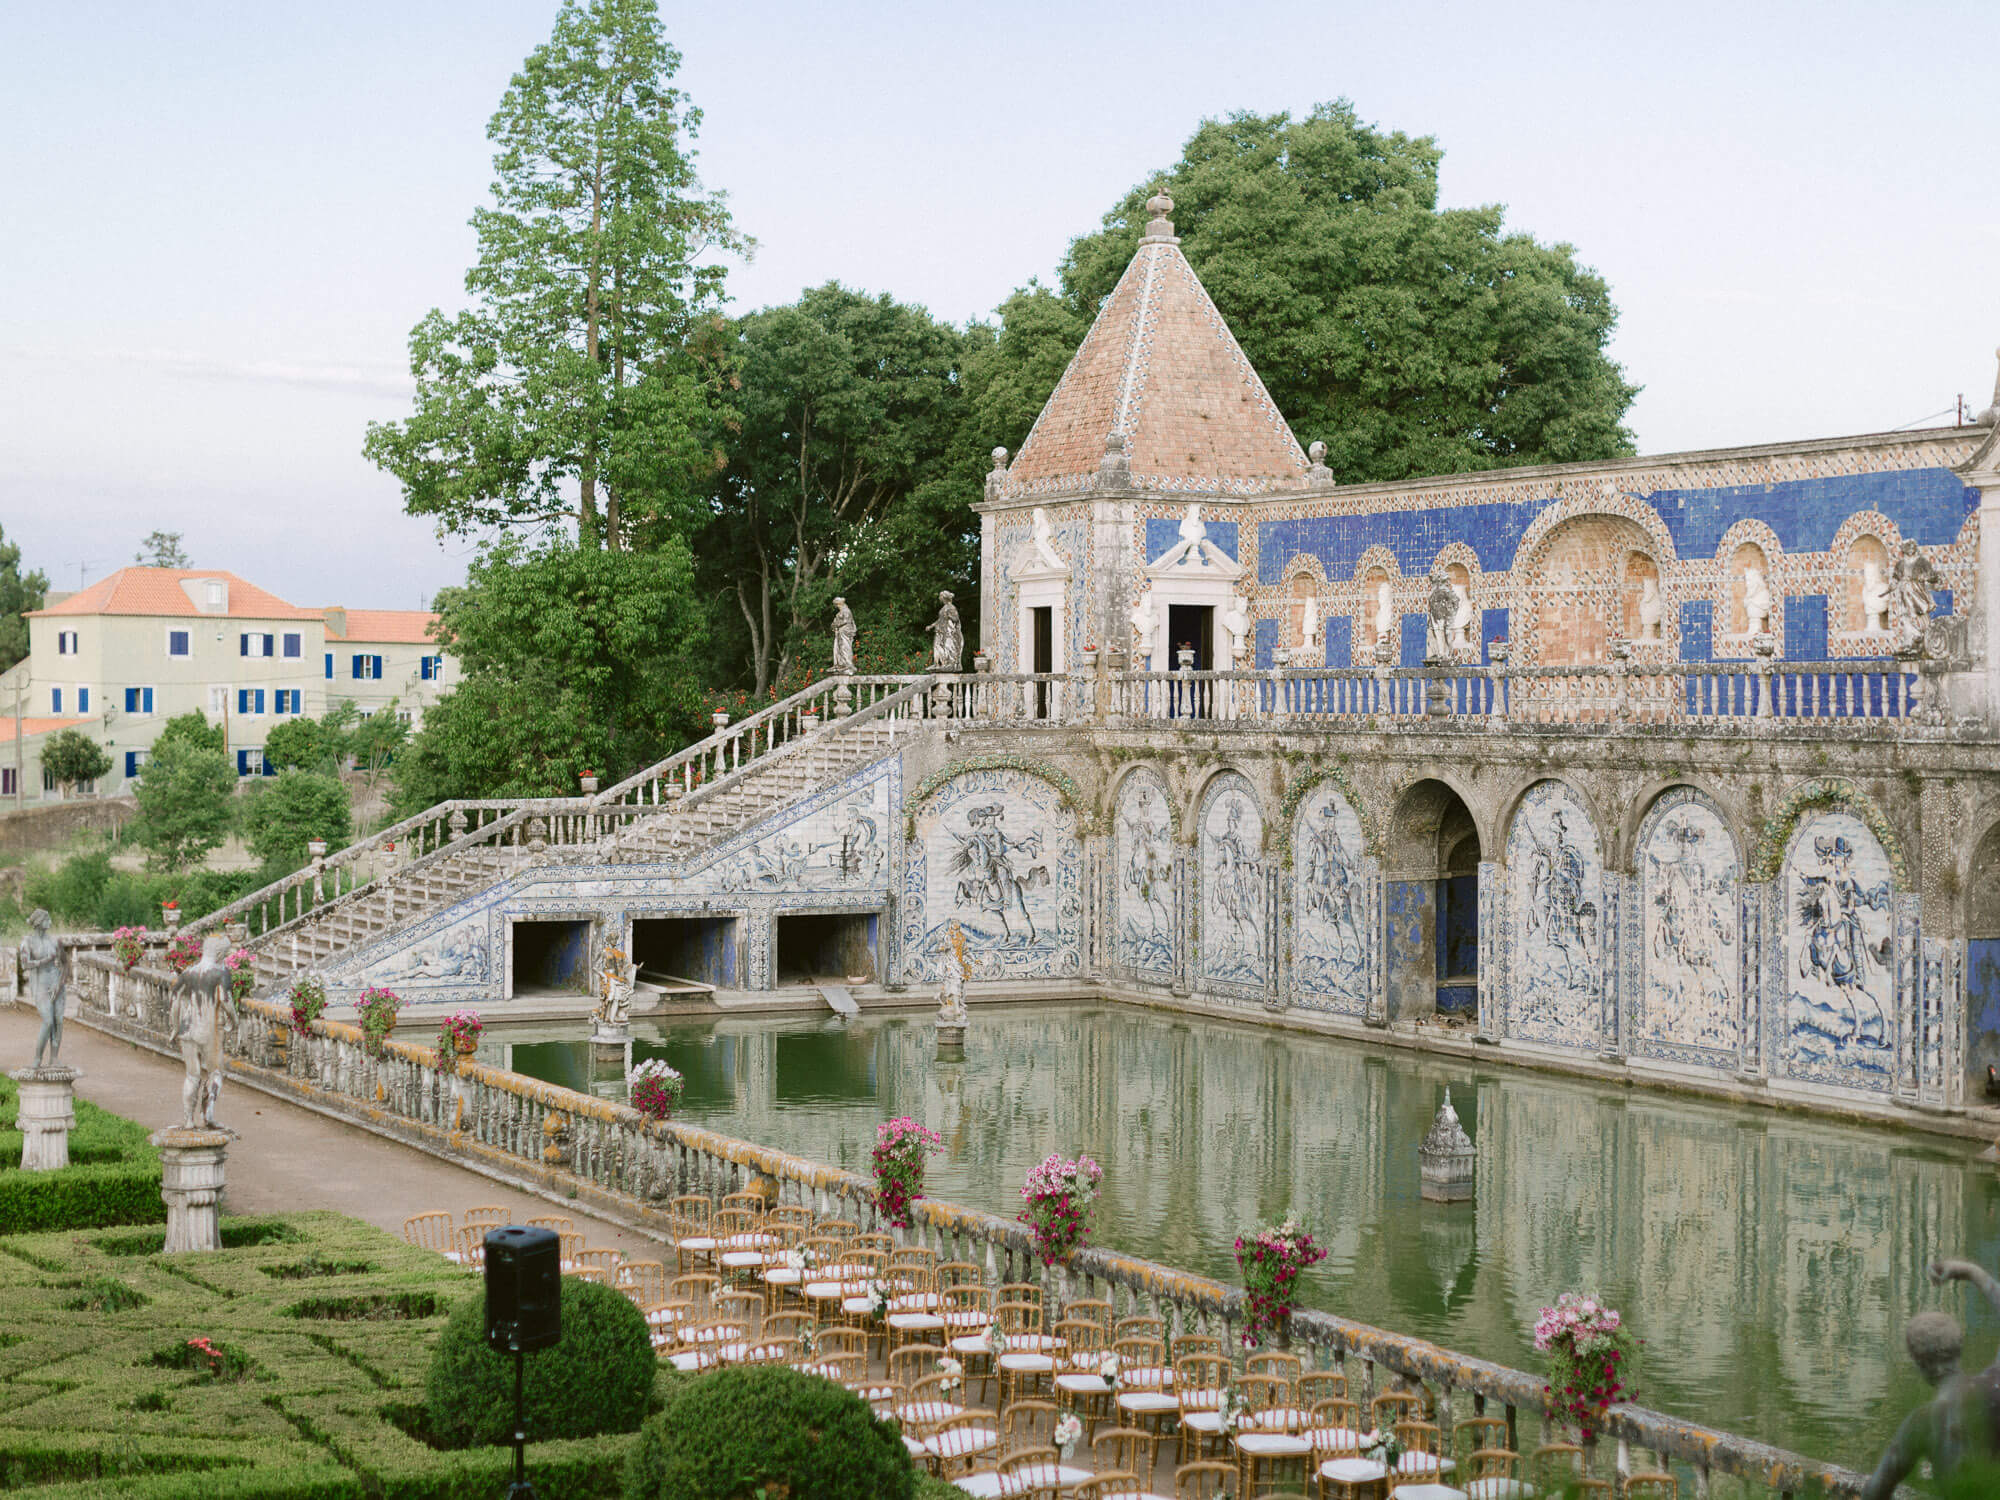 unique Portuguese tile covered facade and lake reflection in Marques de Fronteira Palace by Portugal Wedding Photographer